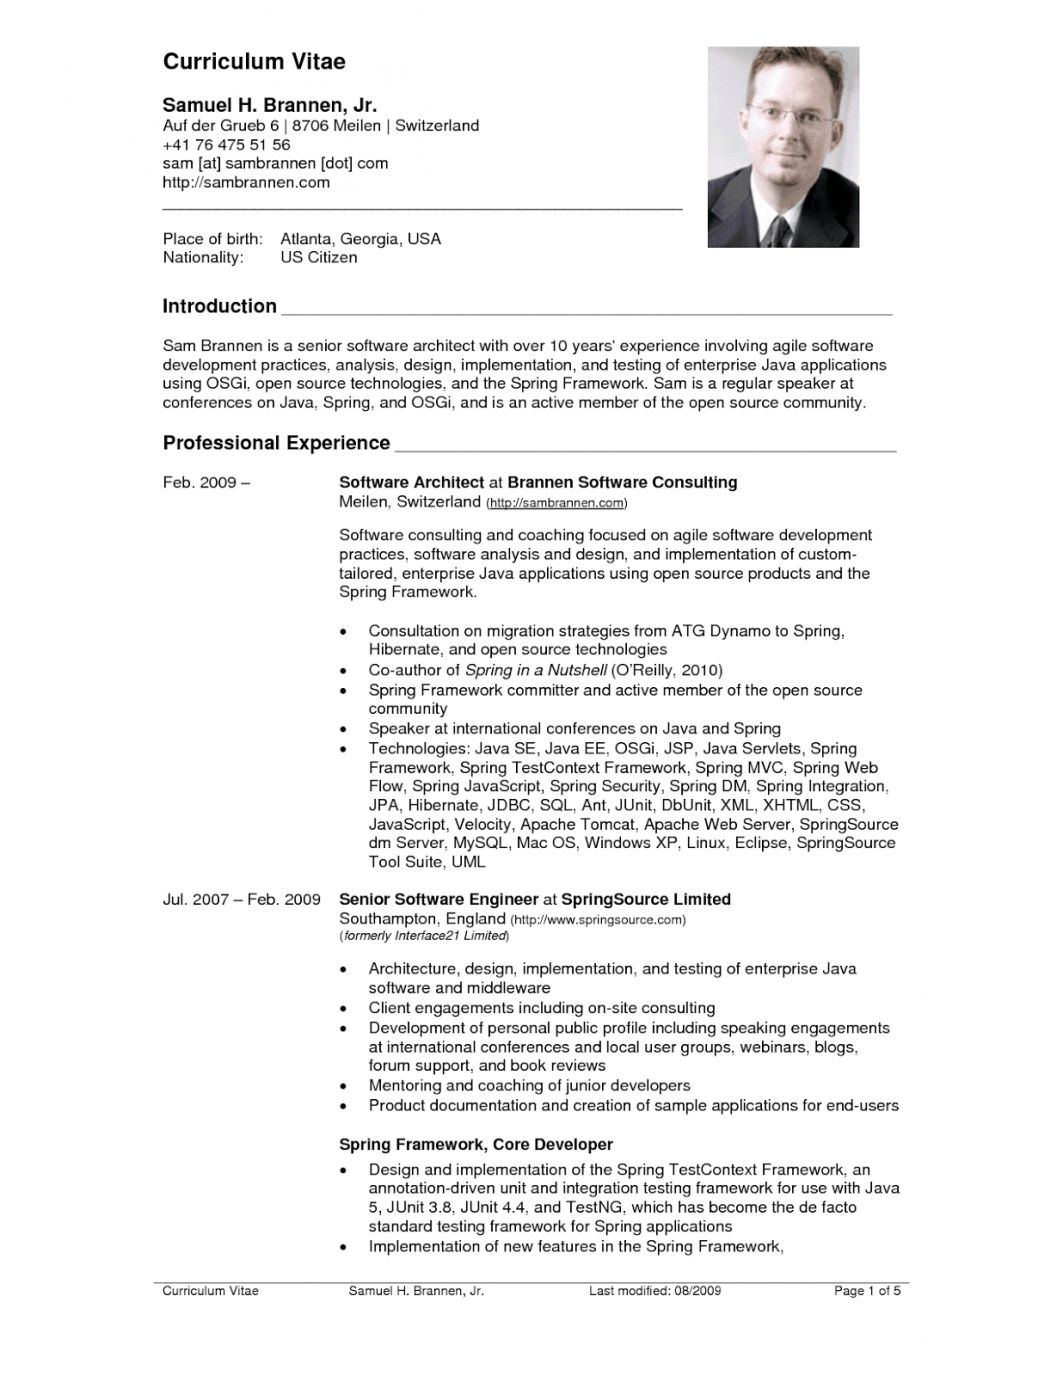 resume format professional cv sample best architect skills and qualifications bld Resume American Resume Format Sample